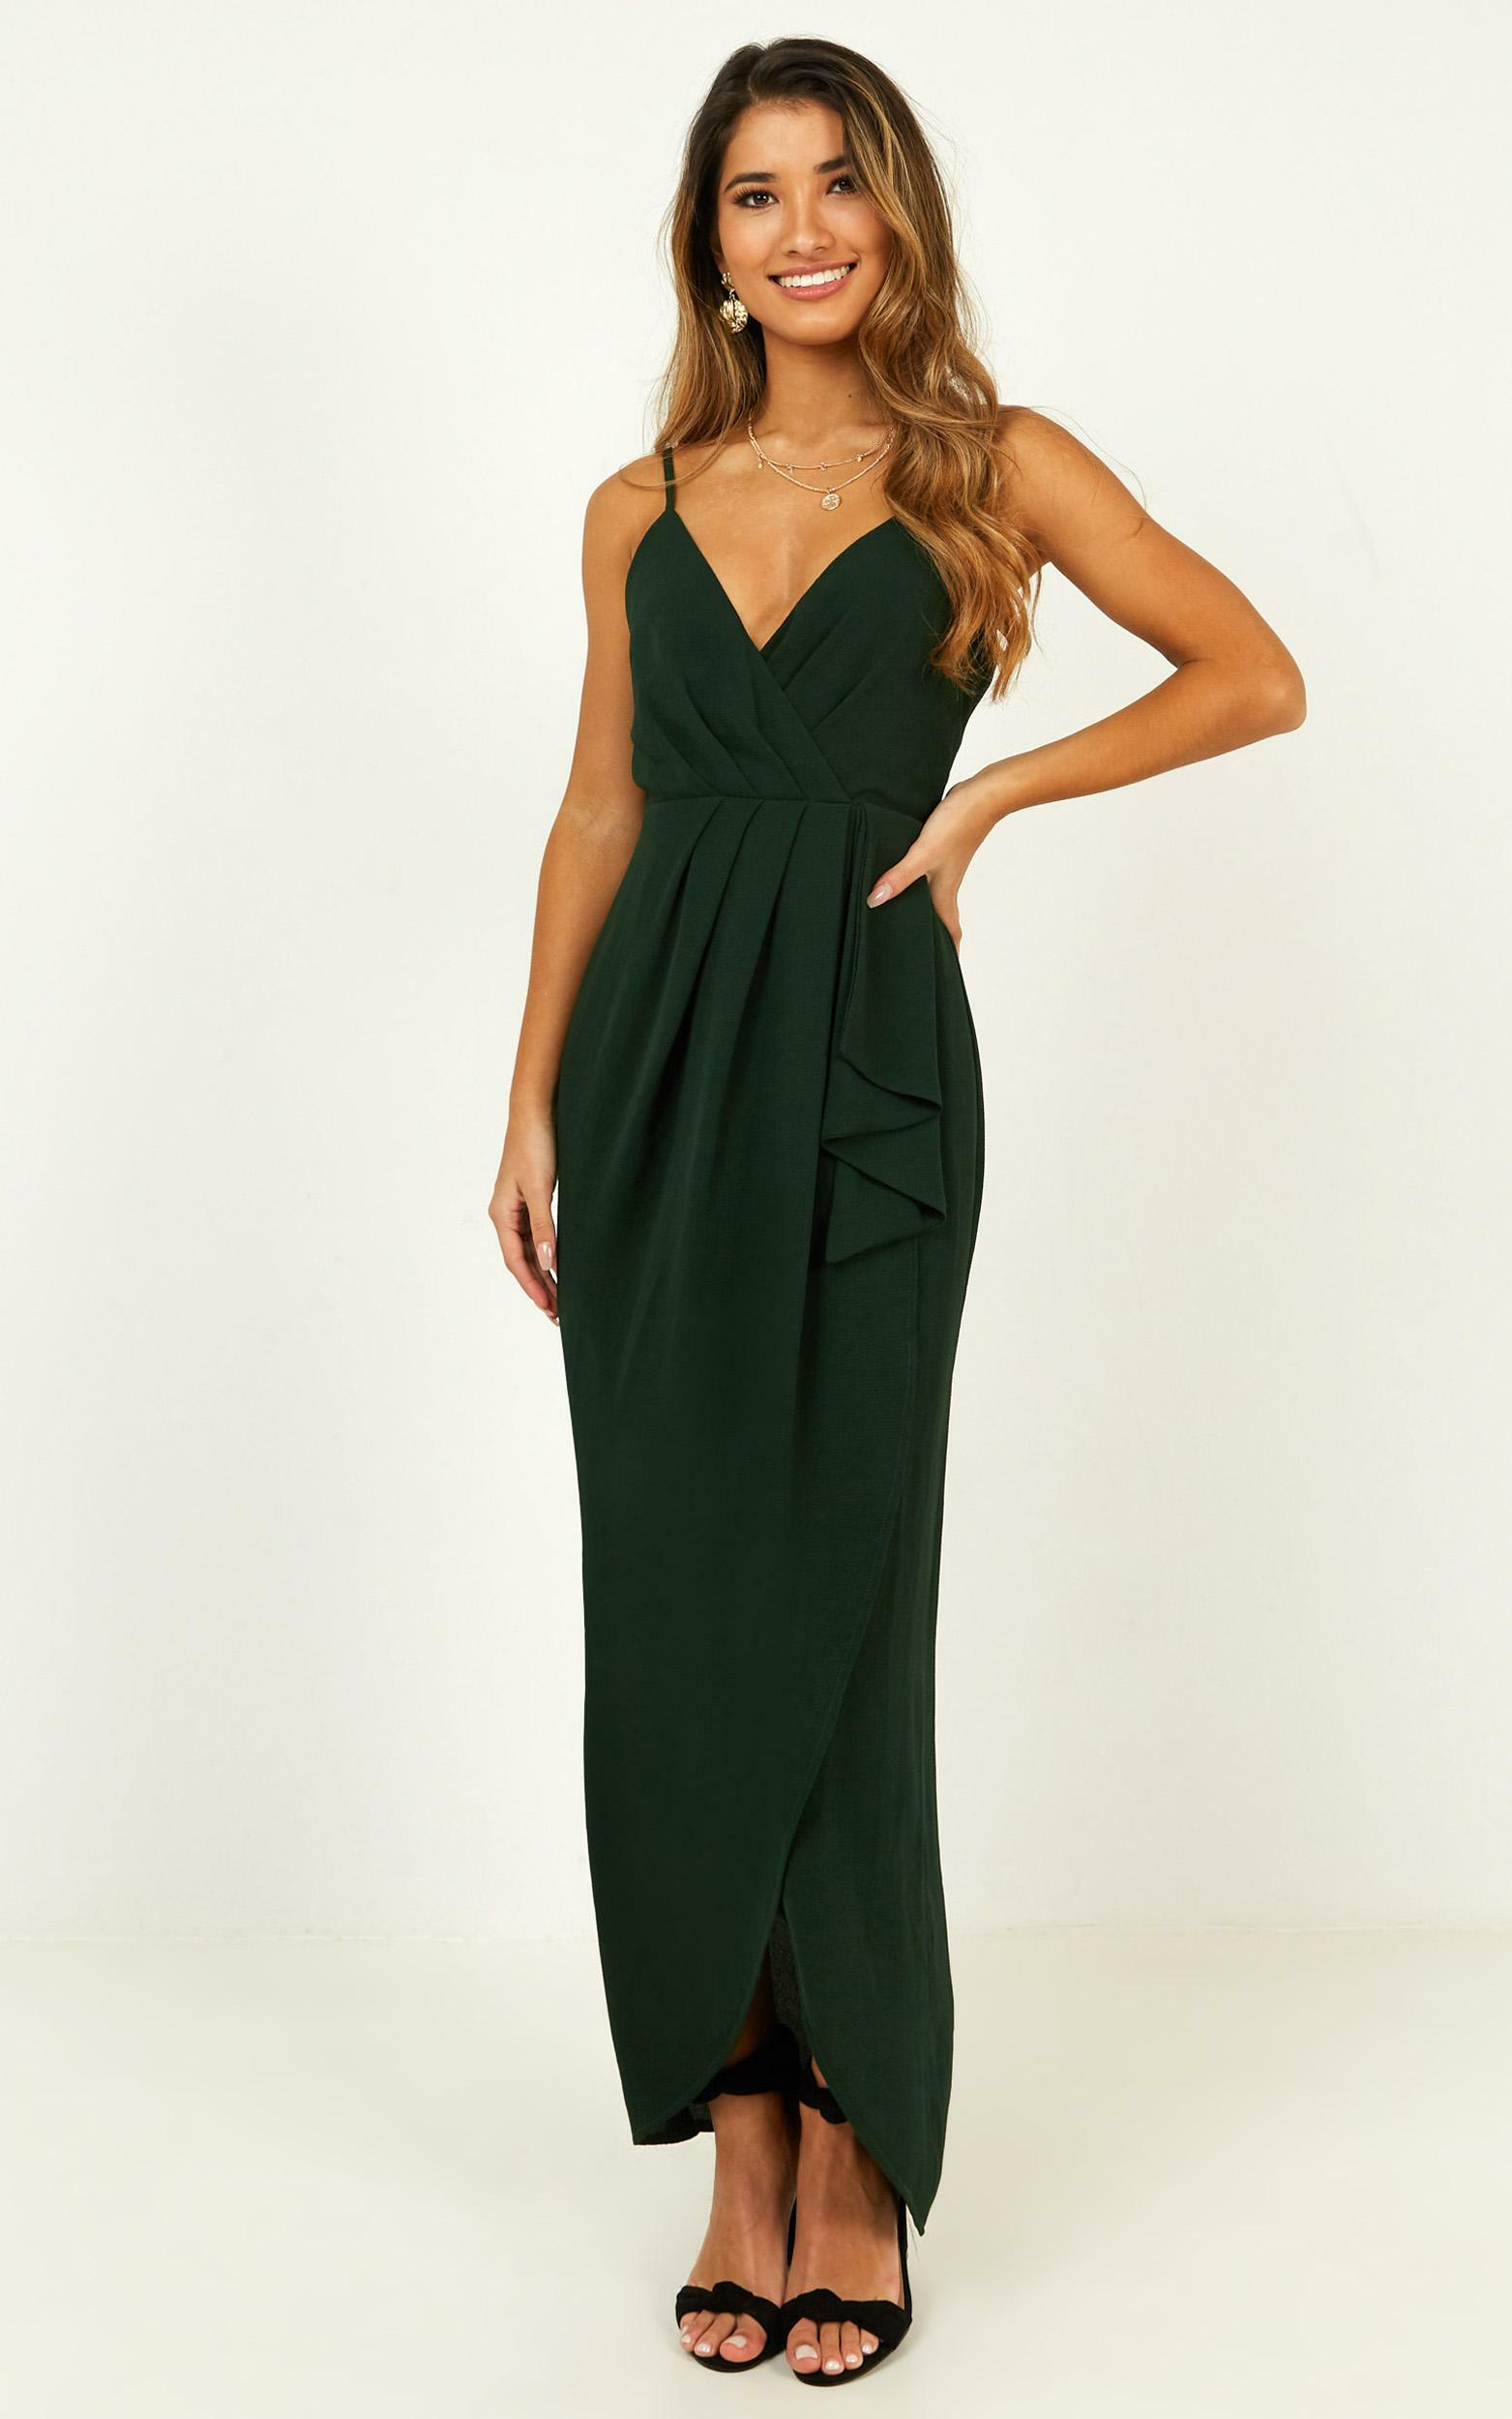 Gave Me You Dress in emerald - 14 (XL), GRN7, hi-res image number null